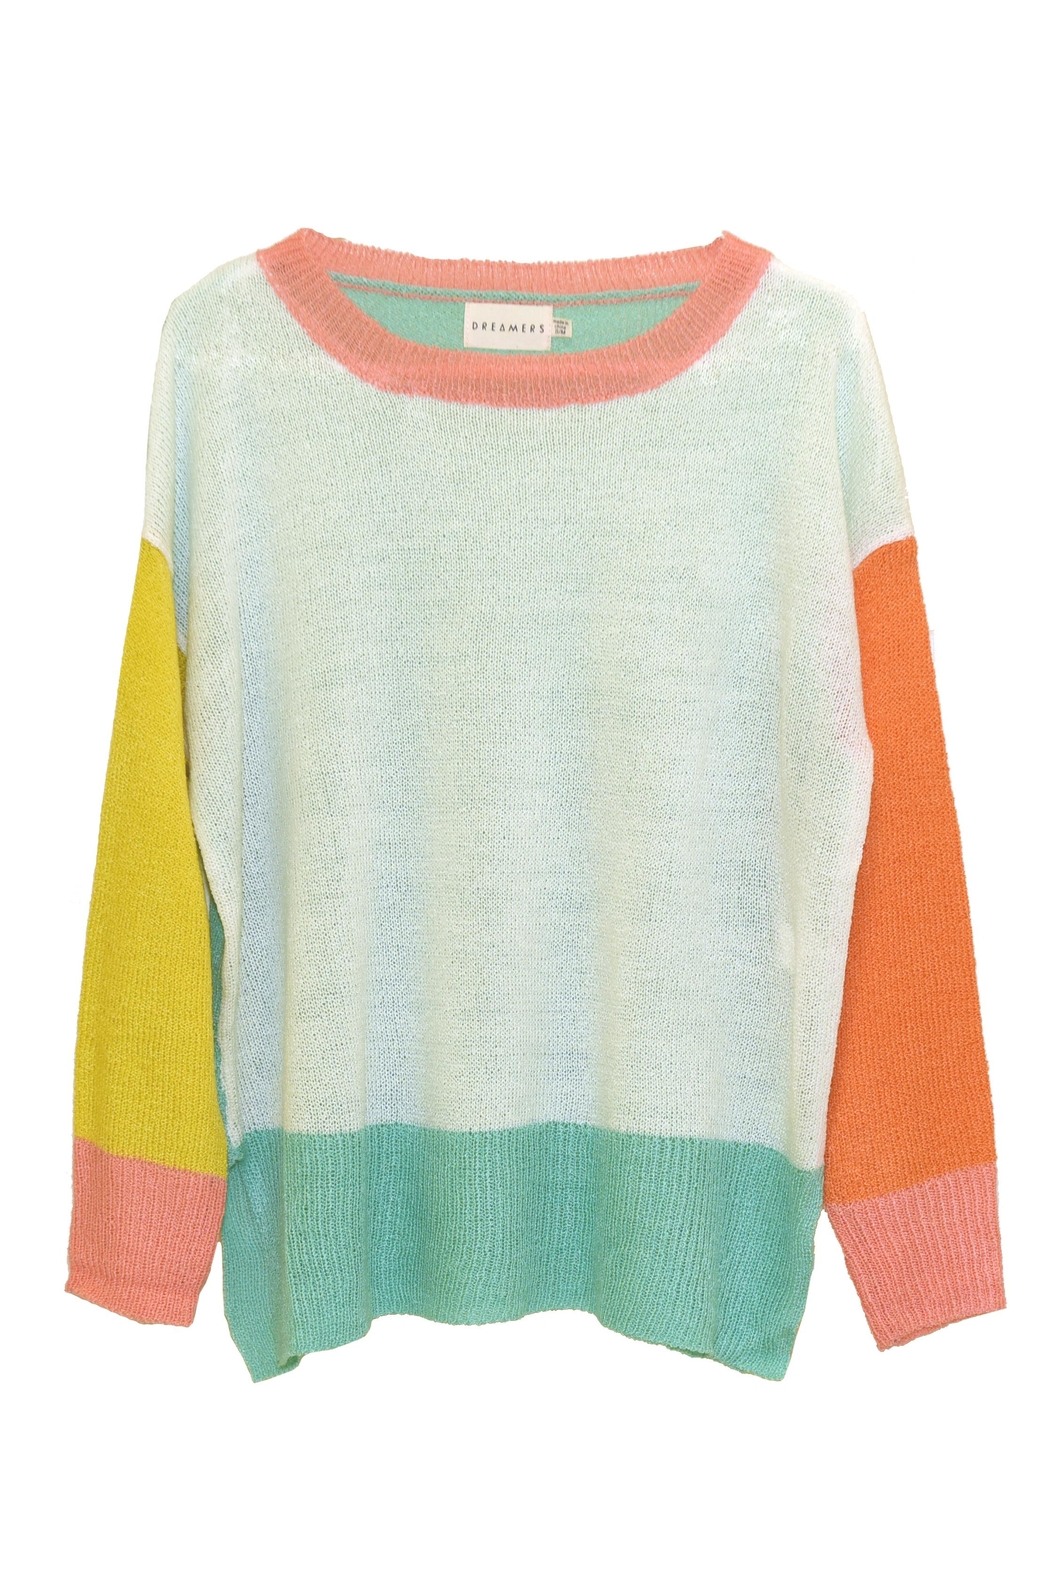 Dreamers Color-Block Knit Sweater - Front Cropped Image